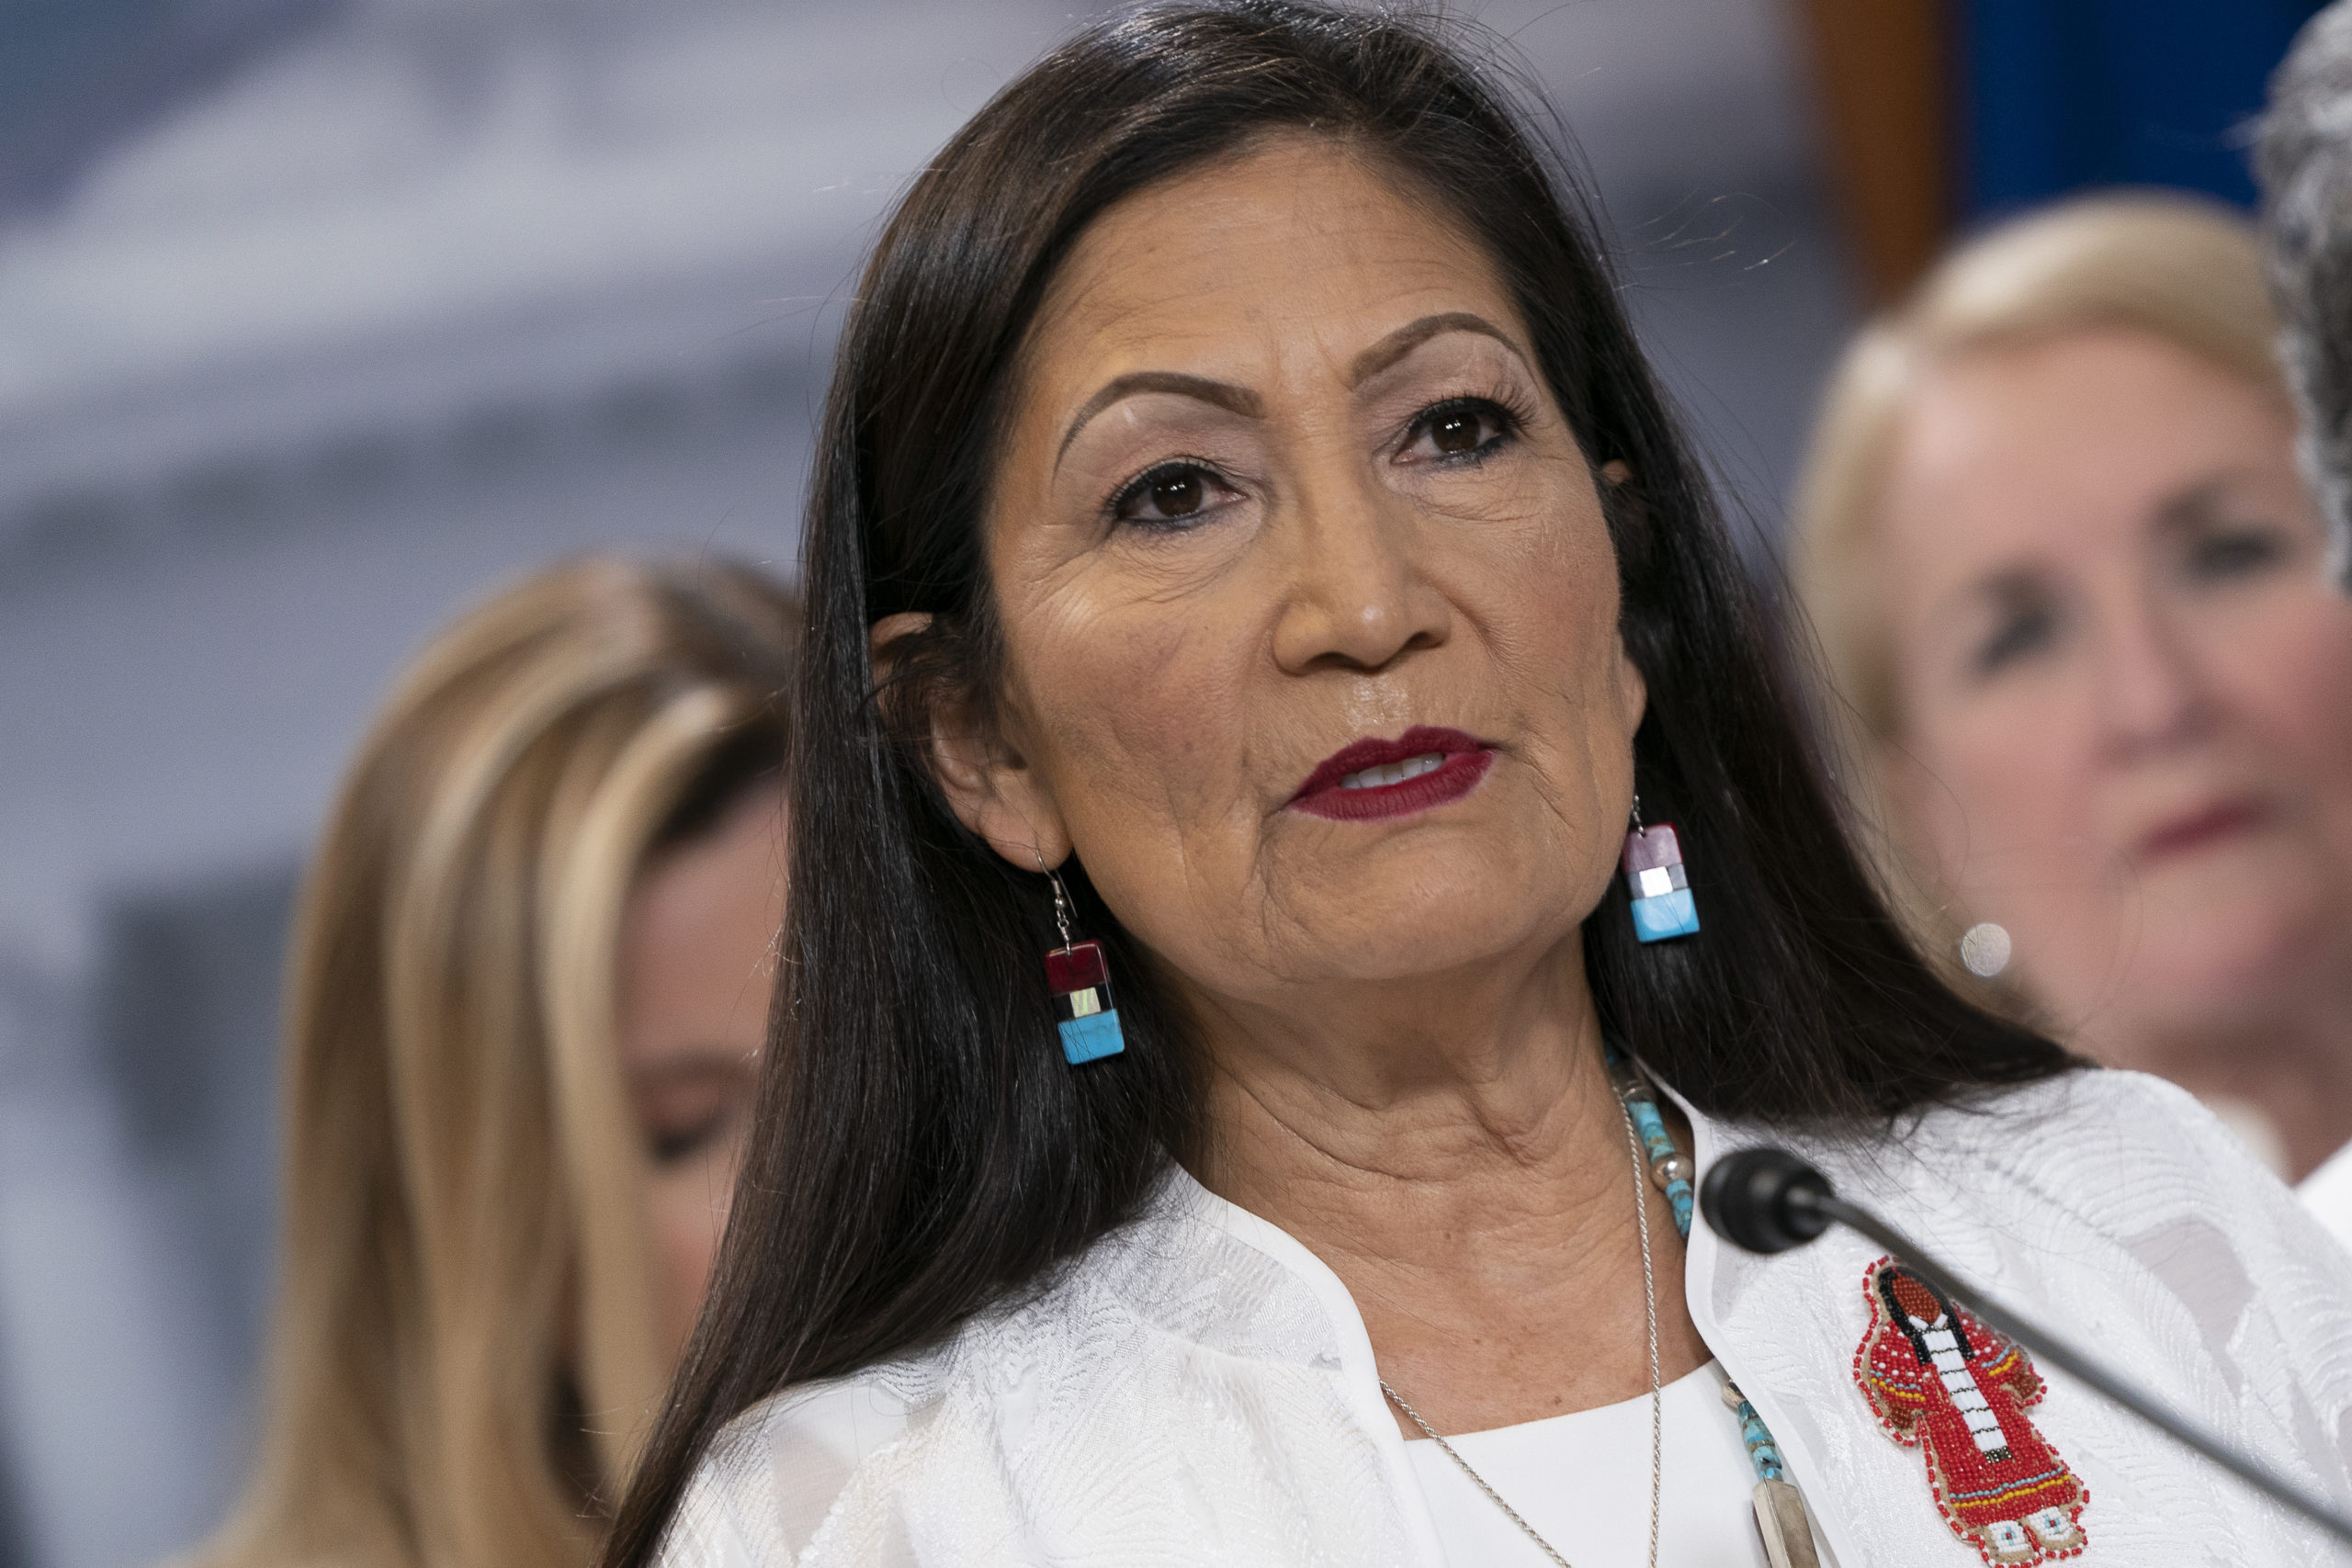 WASHINGTON, DC - FEBRUARY 04: U.S. Rep. Deb Haaland (D-NM) speaks during a news conference with members of the Democratic Women's Caucus prior to State of the Union at the U.S. Capitol on February 4, 2020 in Washington, DC. The group of women is wearing white to commemorate the anniversary of the passage of the 19th Amendment to the U.S. Constitution. (Photo by Alex Edelman/Getty Images)